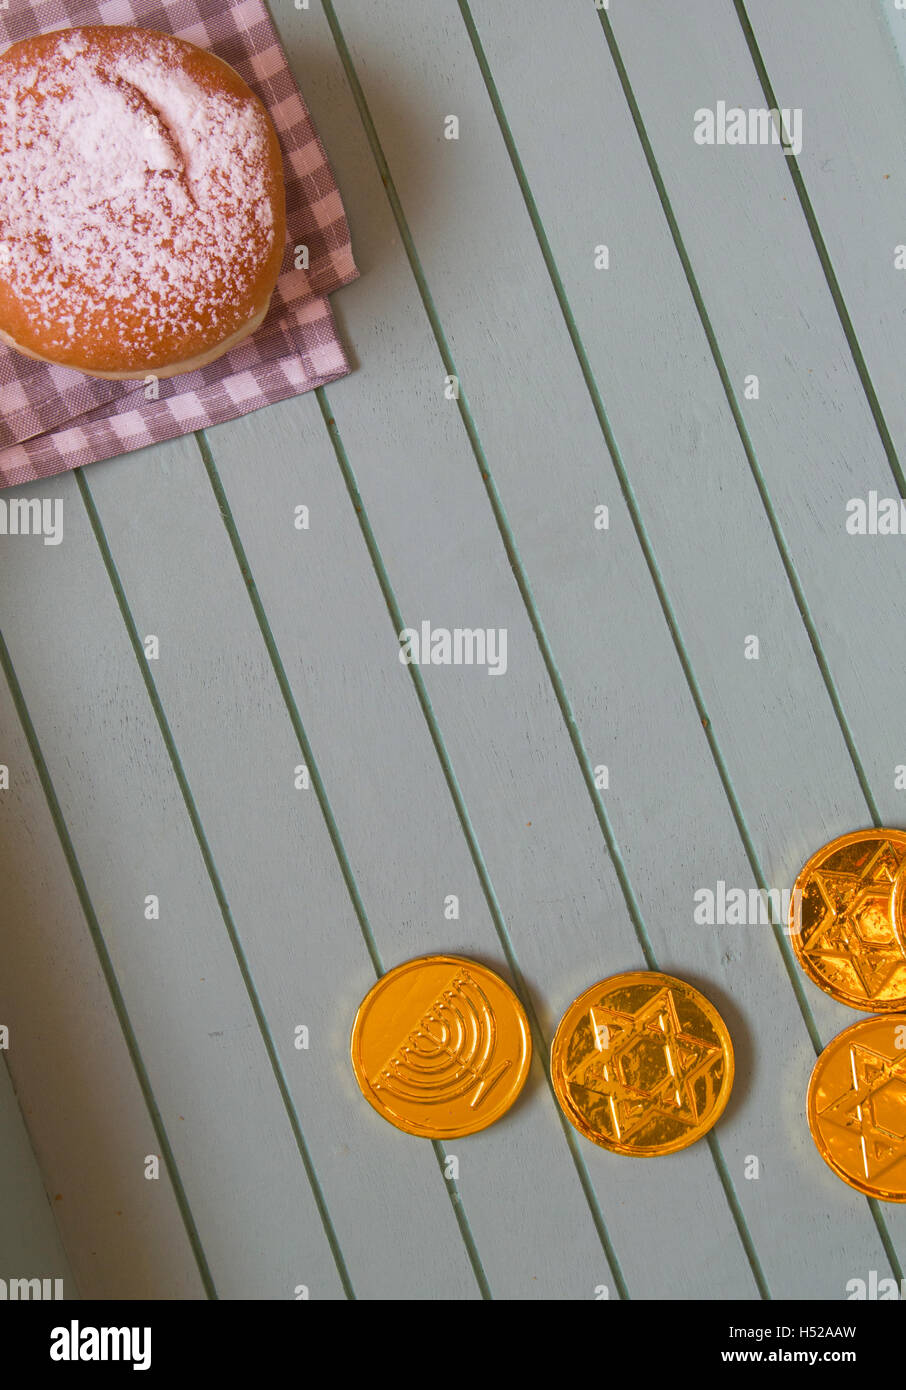 Flat Lay Jewish holiday hannukah symbols - donut and chockolate coins on vintage background,lot of copy space - Stock Image